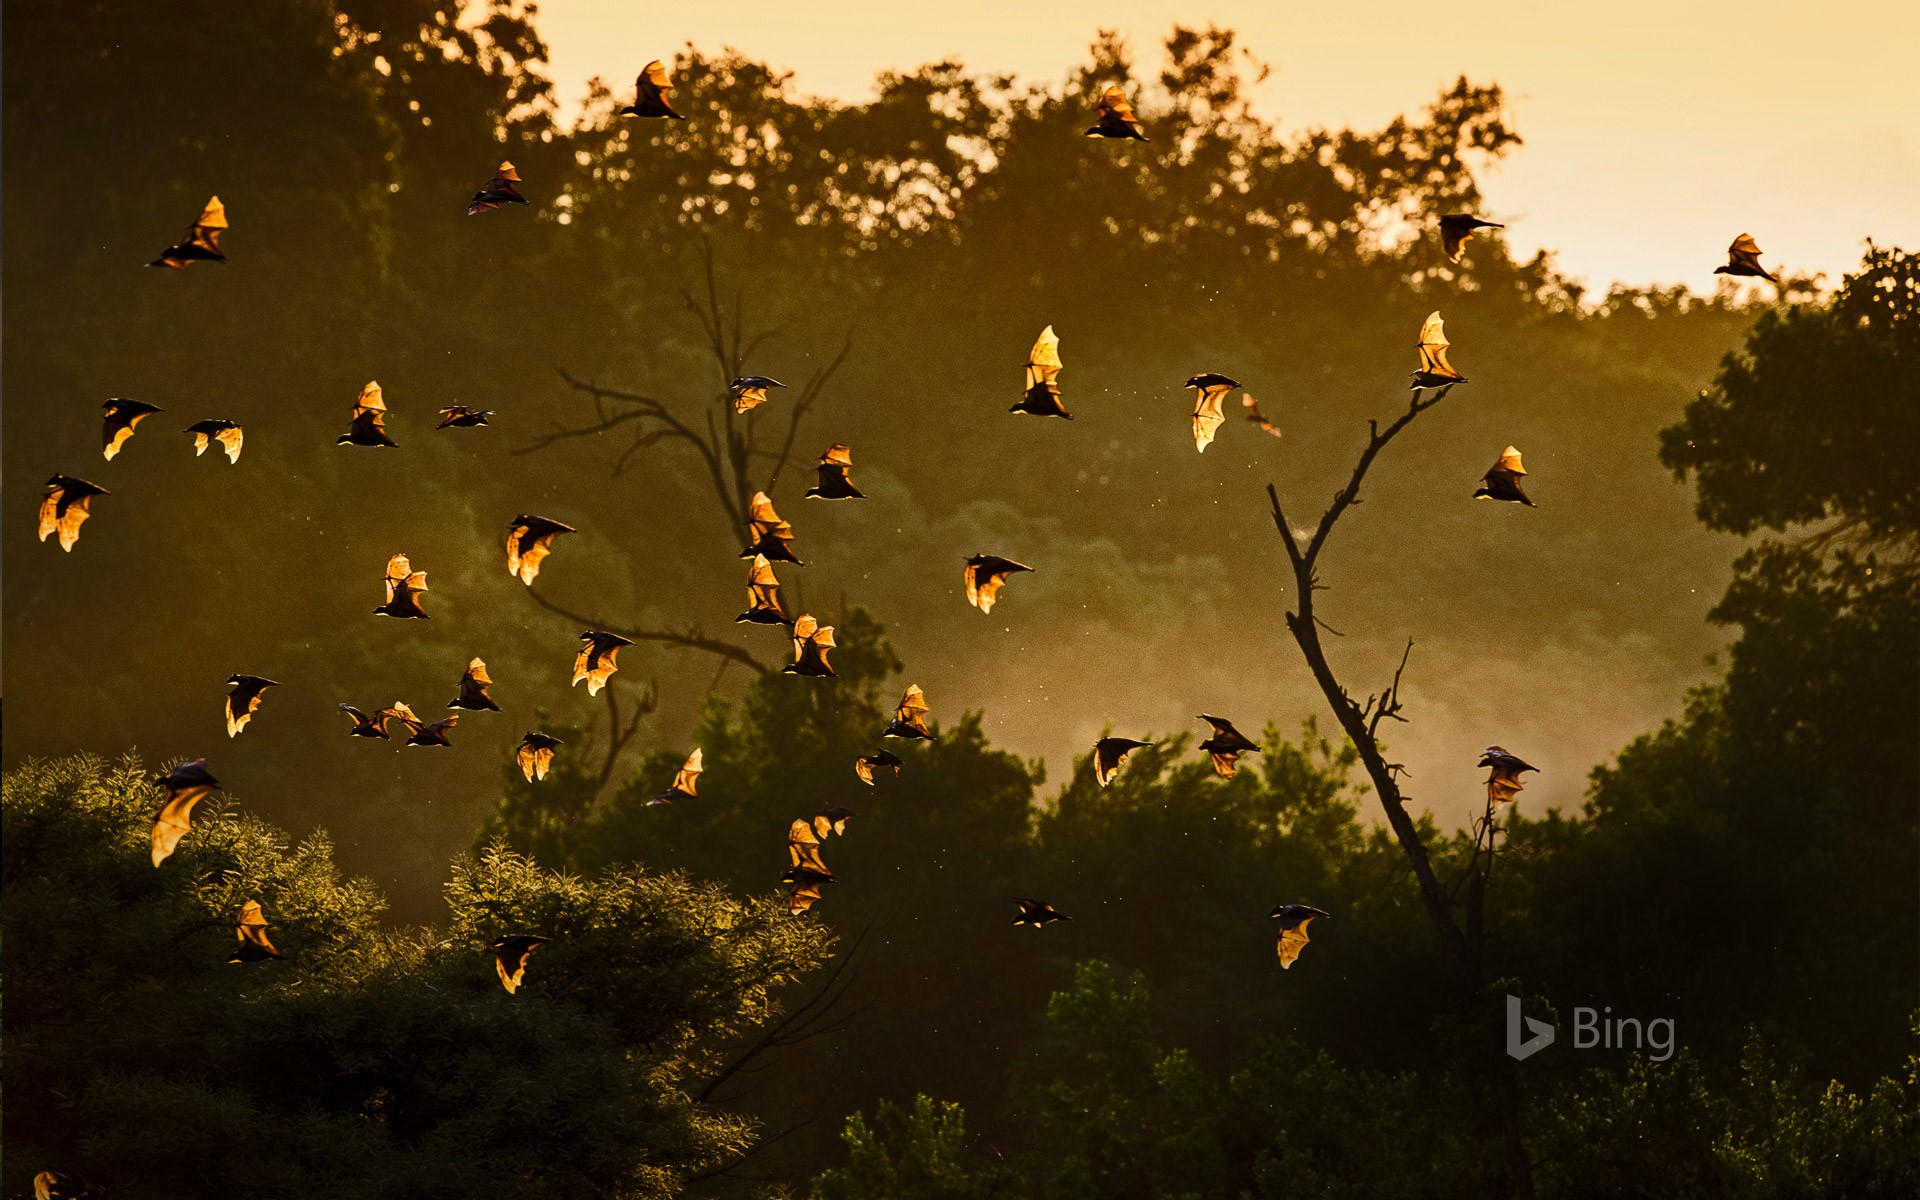 Straw-colored fruit bats in Kasanka National Park, Zambia